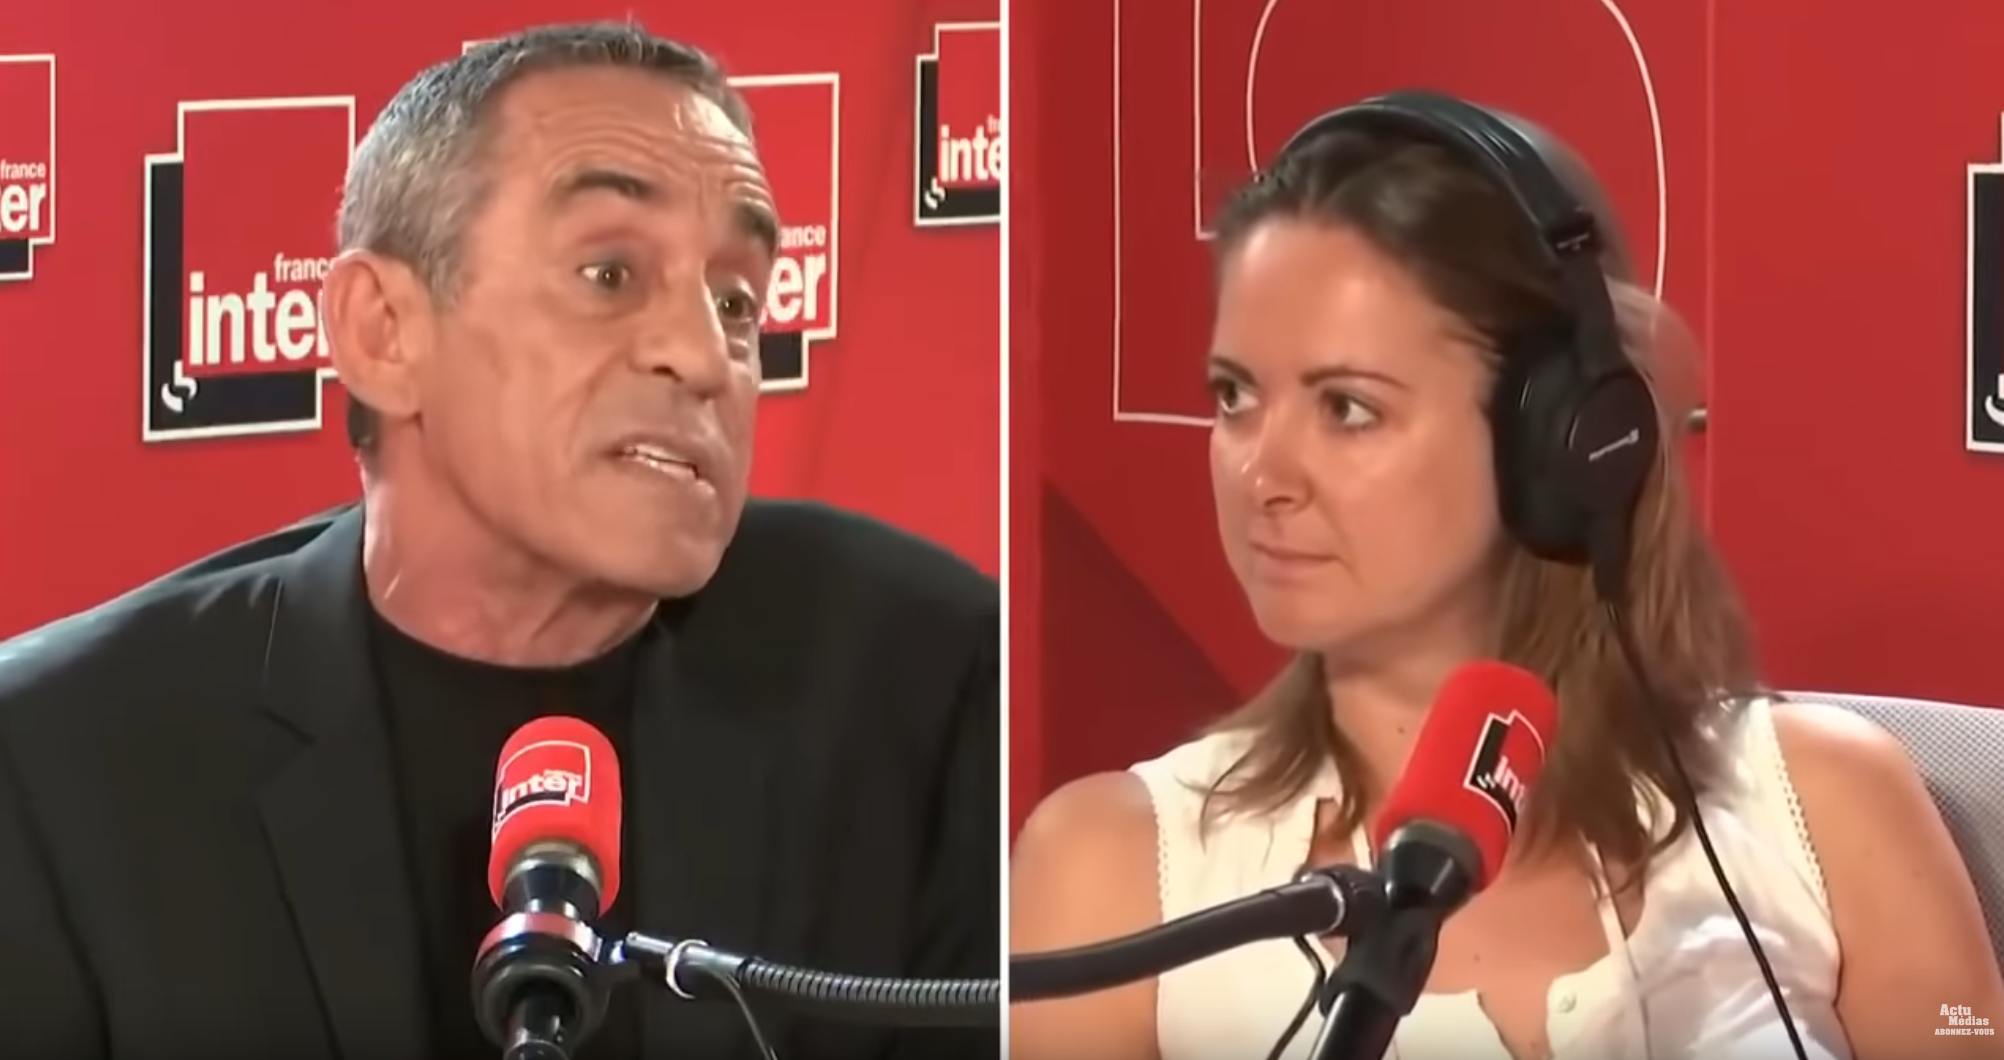 Thierry Ardisson VS Charline Vanhoenacker (VIDÉO)